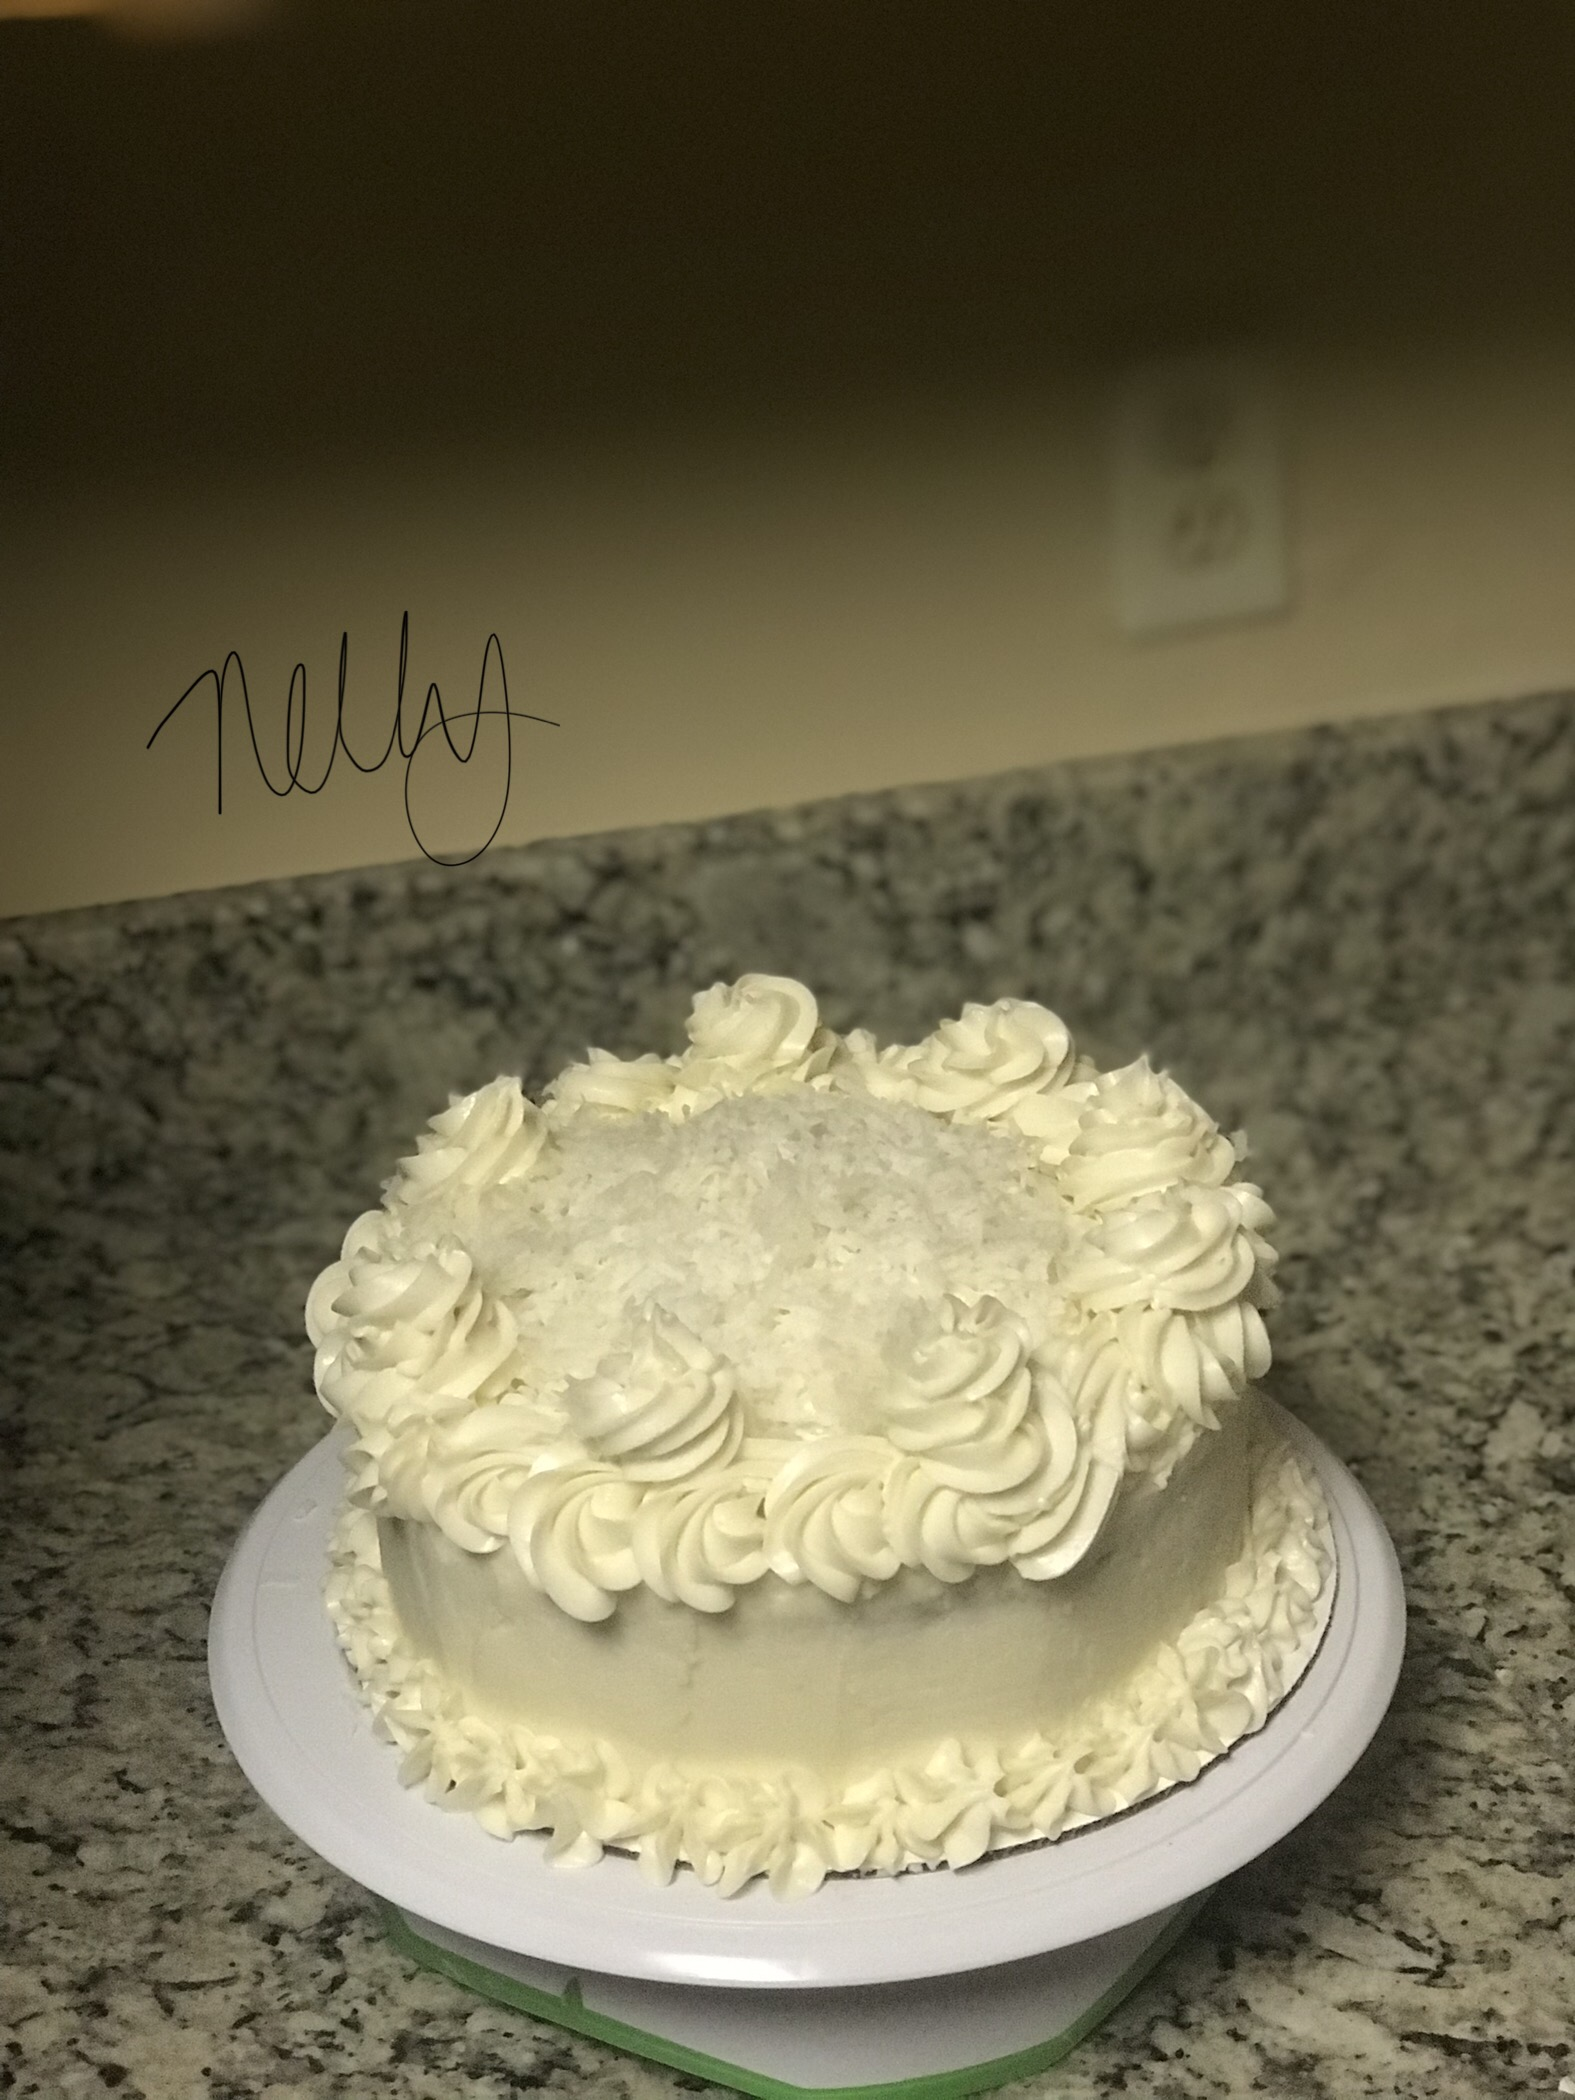 Buttercream-Coconut Cake Icing Chanel Young